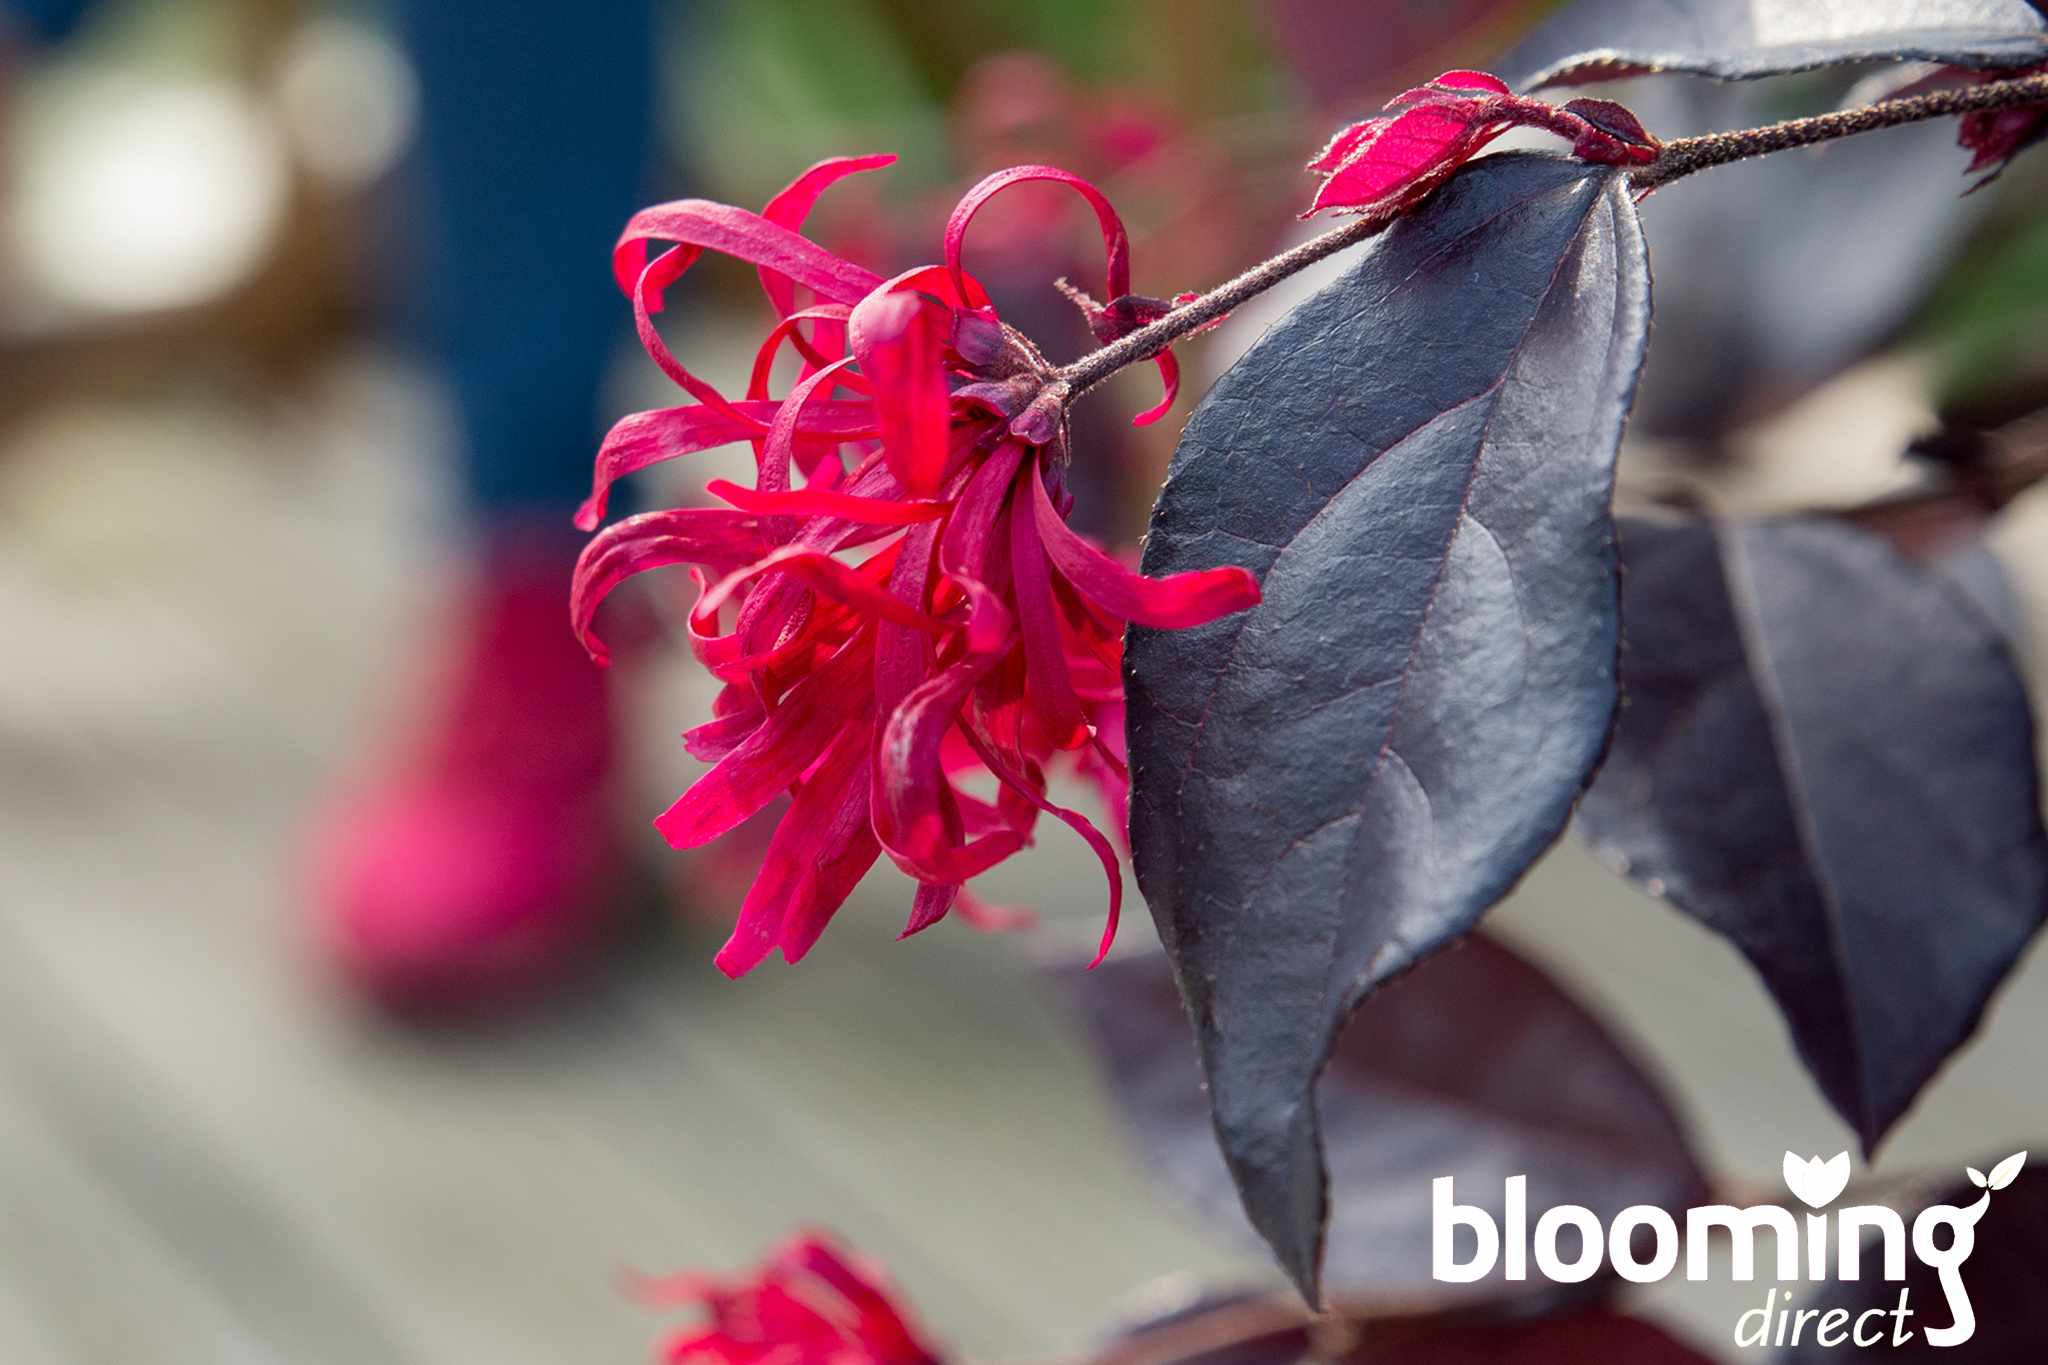 Save 25% on Chinese witch hazel 'EverRed' at Blooming Direct